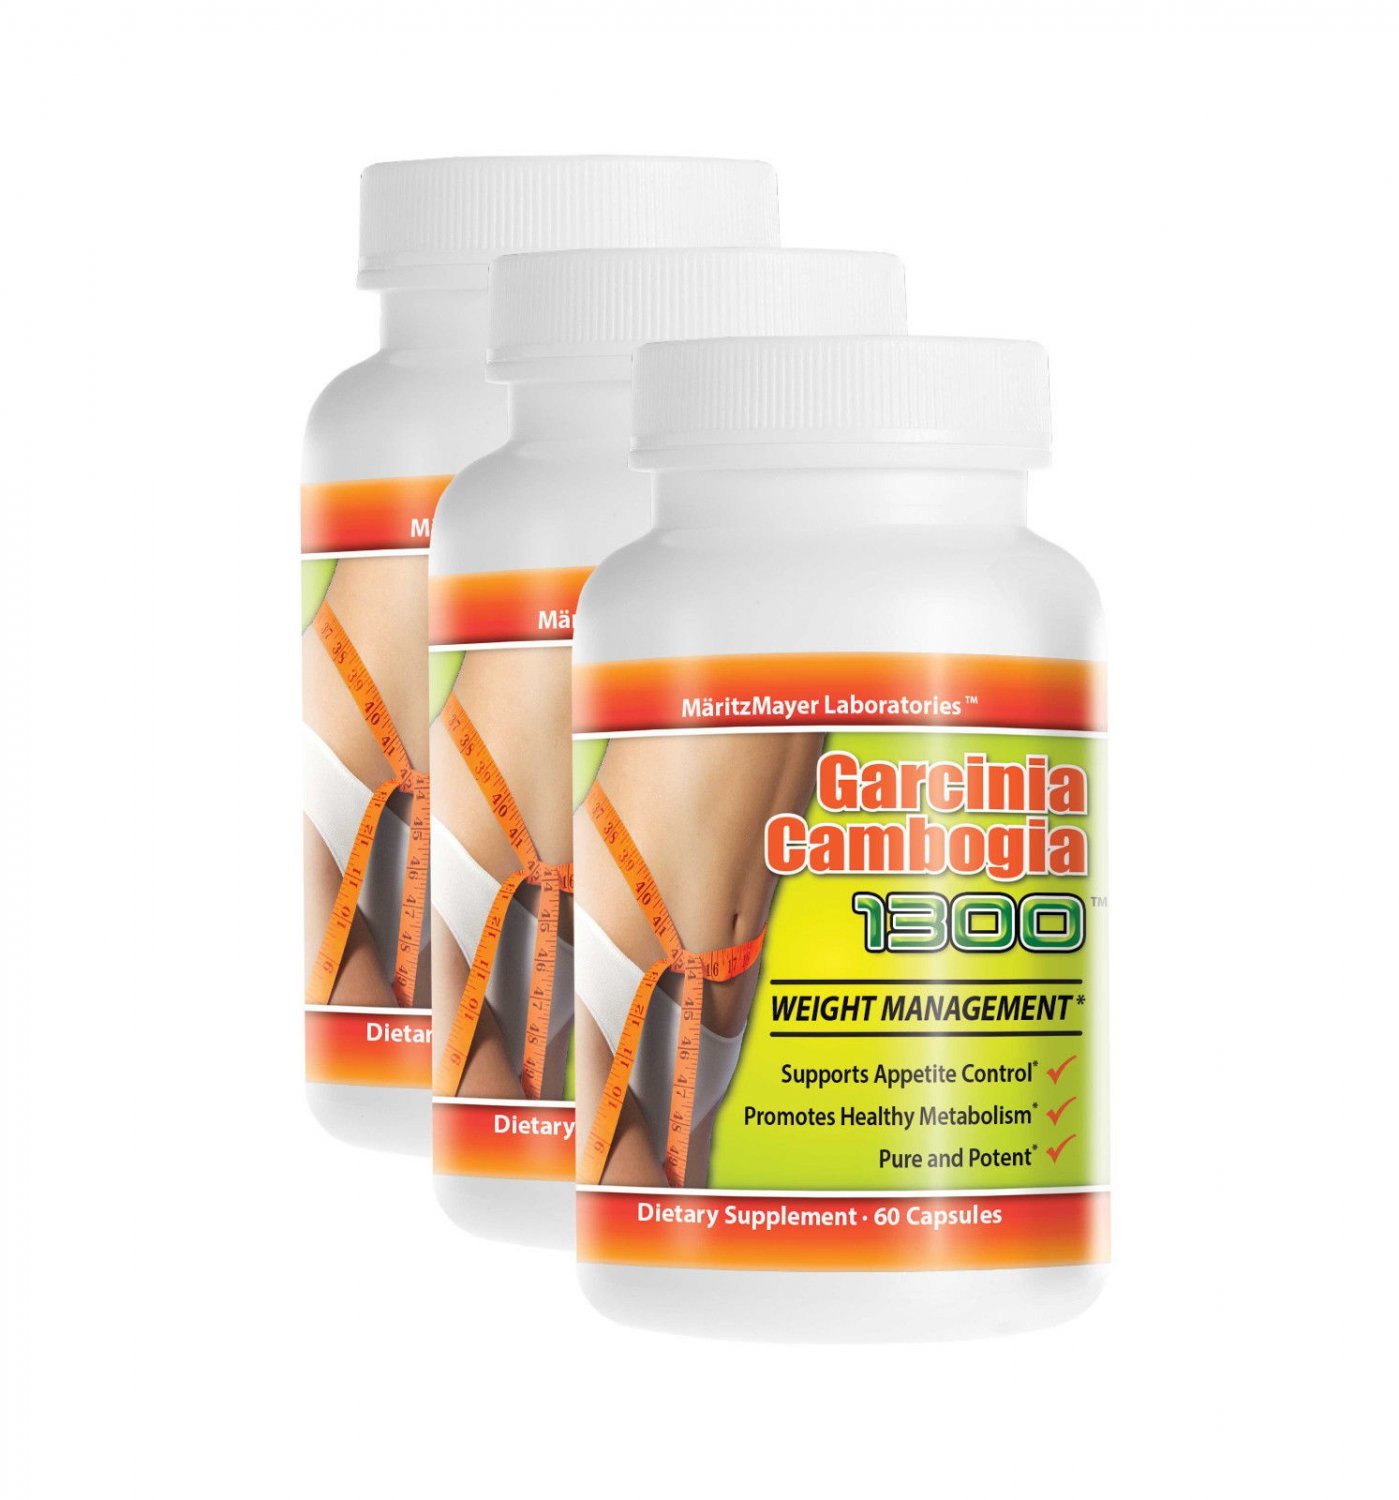 GARCINIA CAMBOGIA Weight Loss (3 bottles)